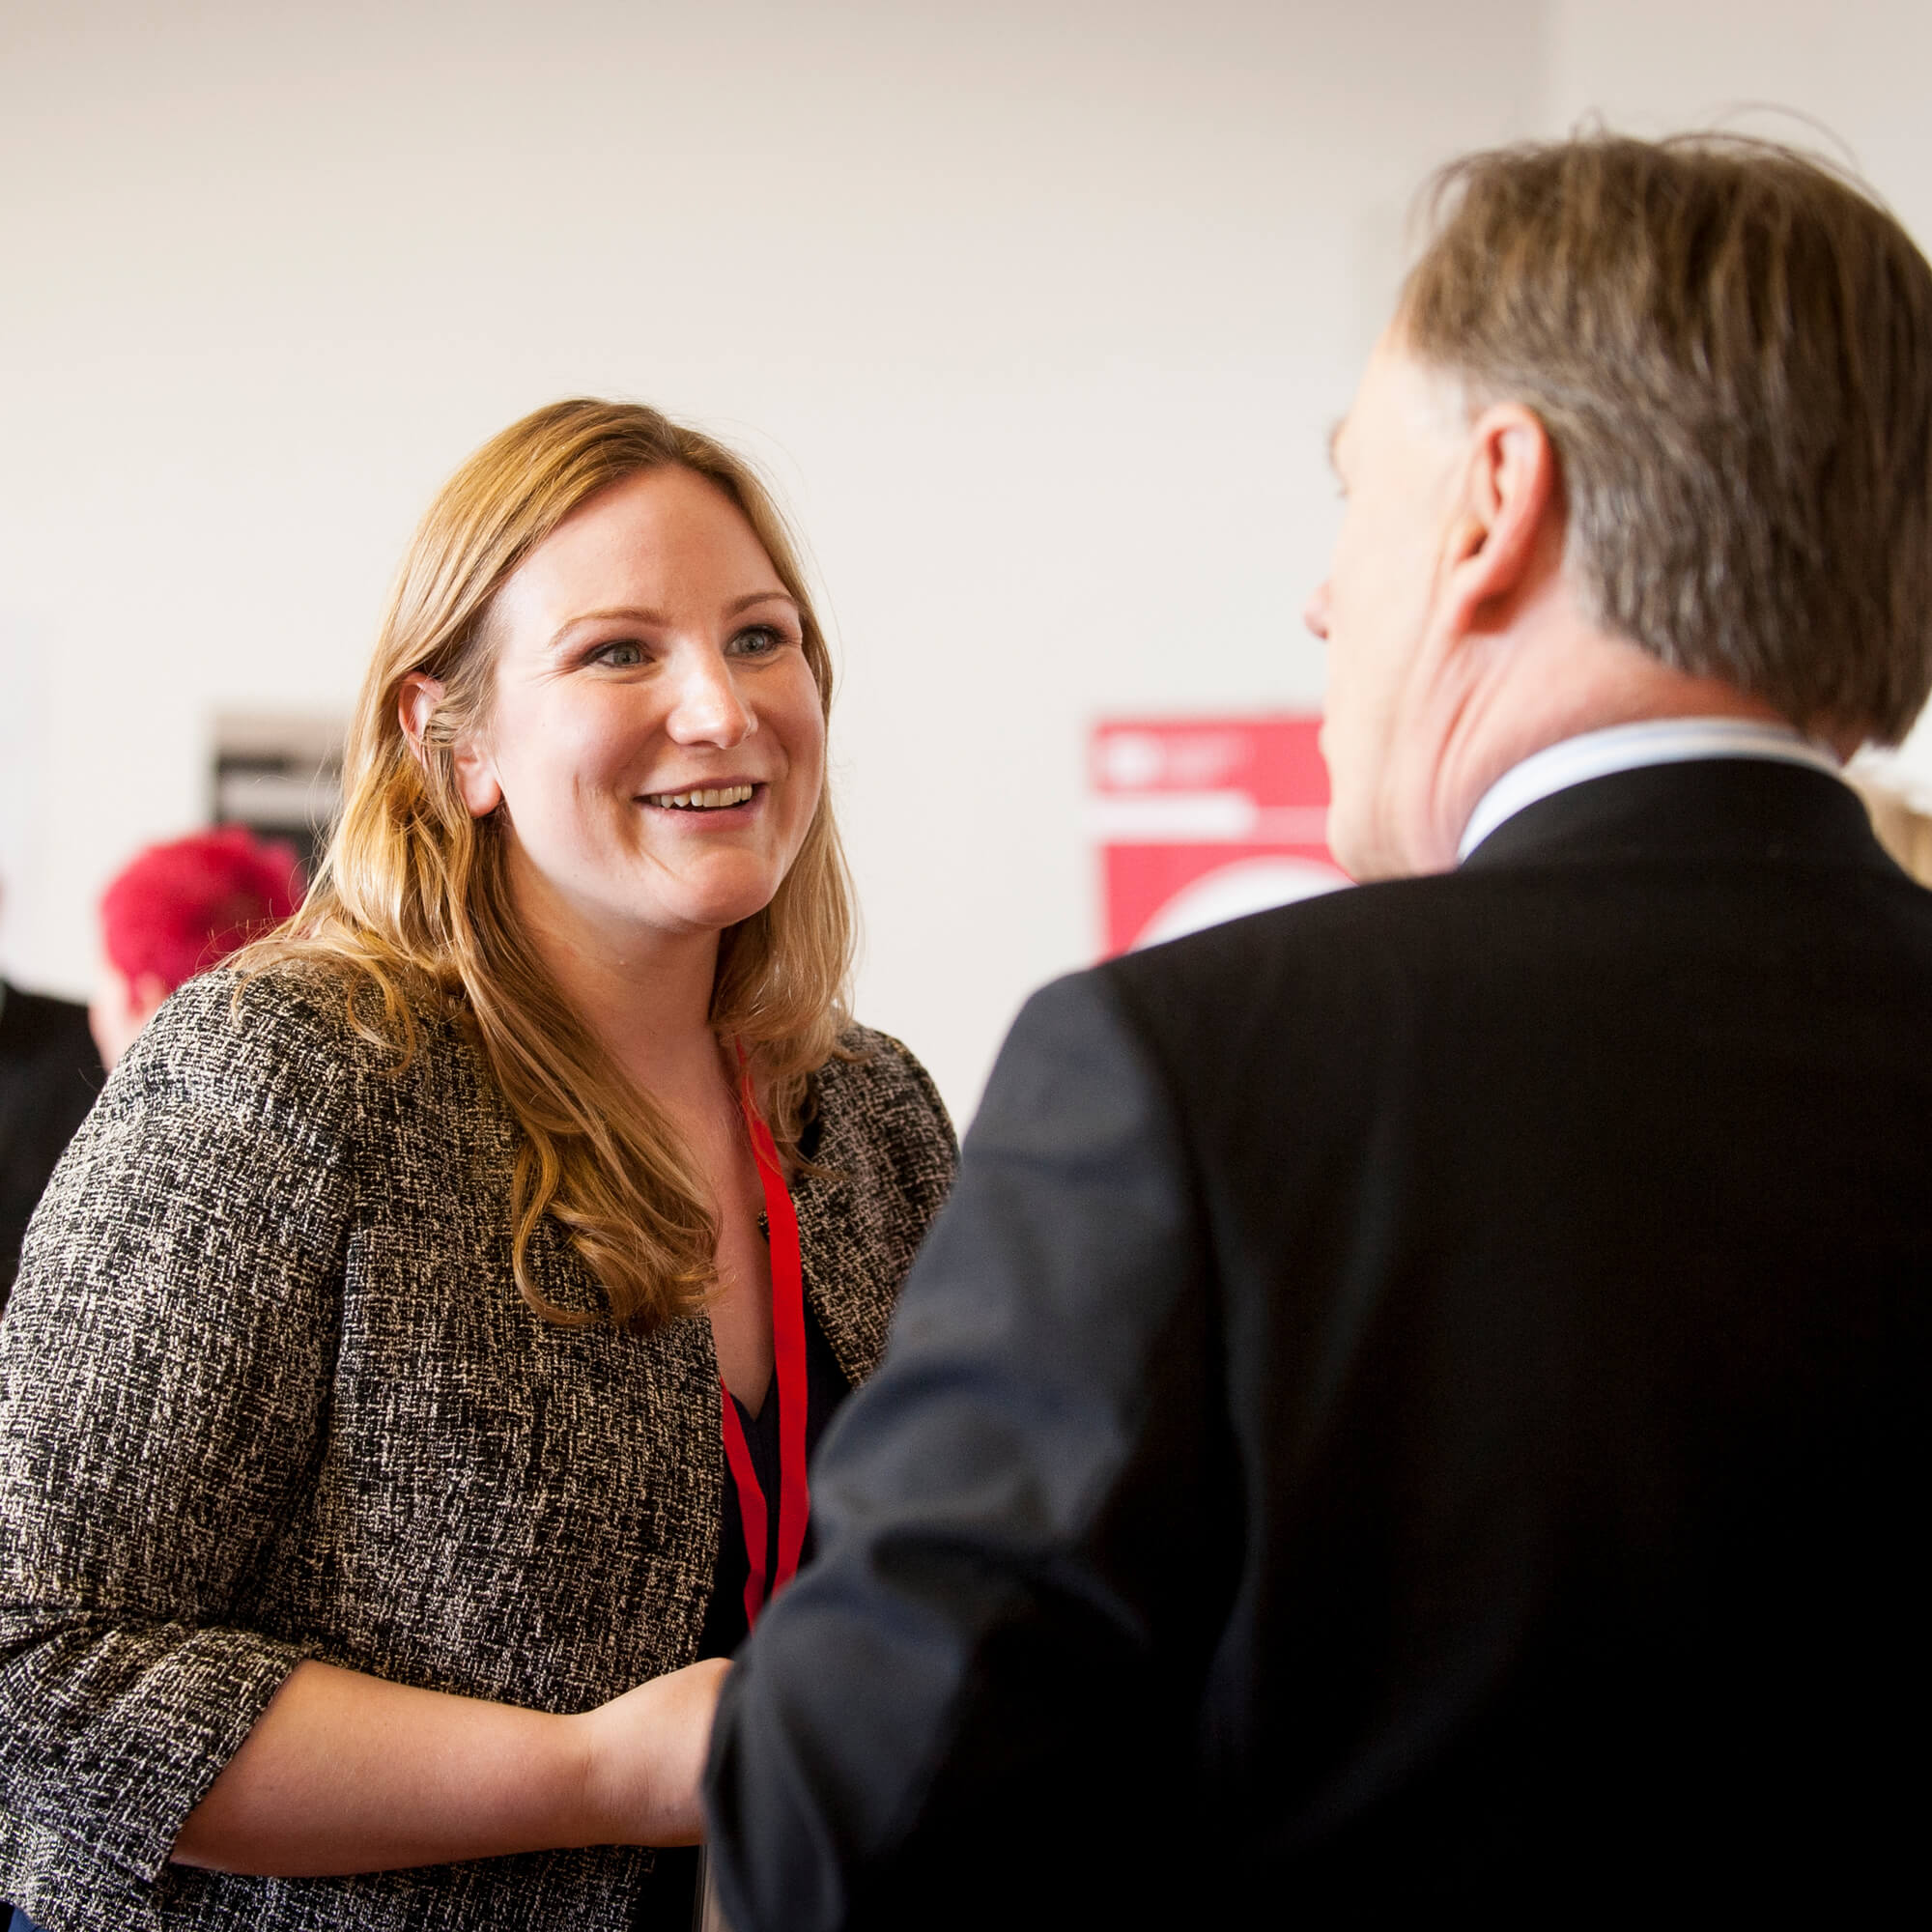 Woman talking to man at Institute of Education launch event